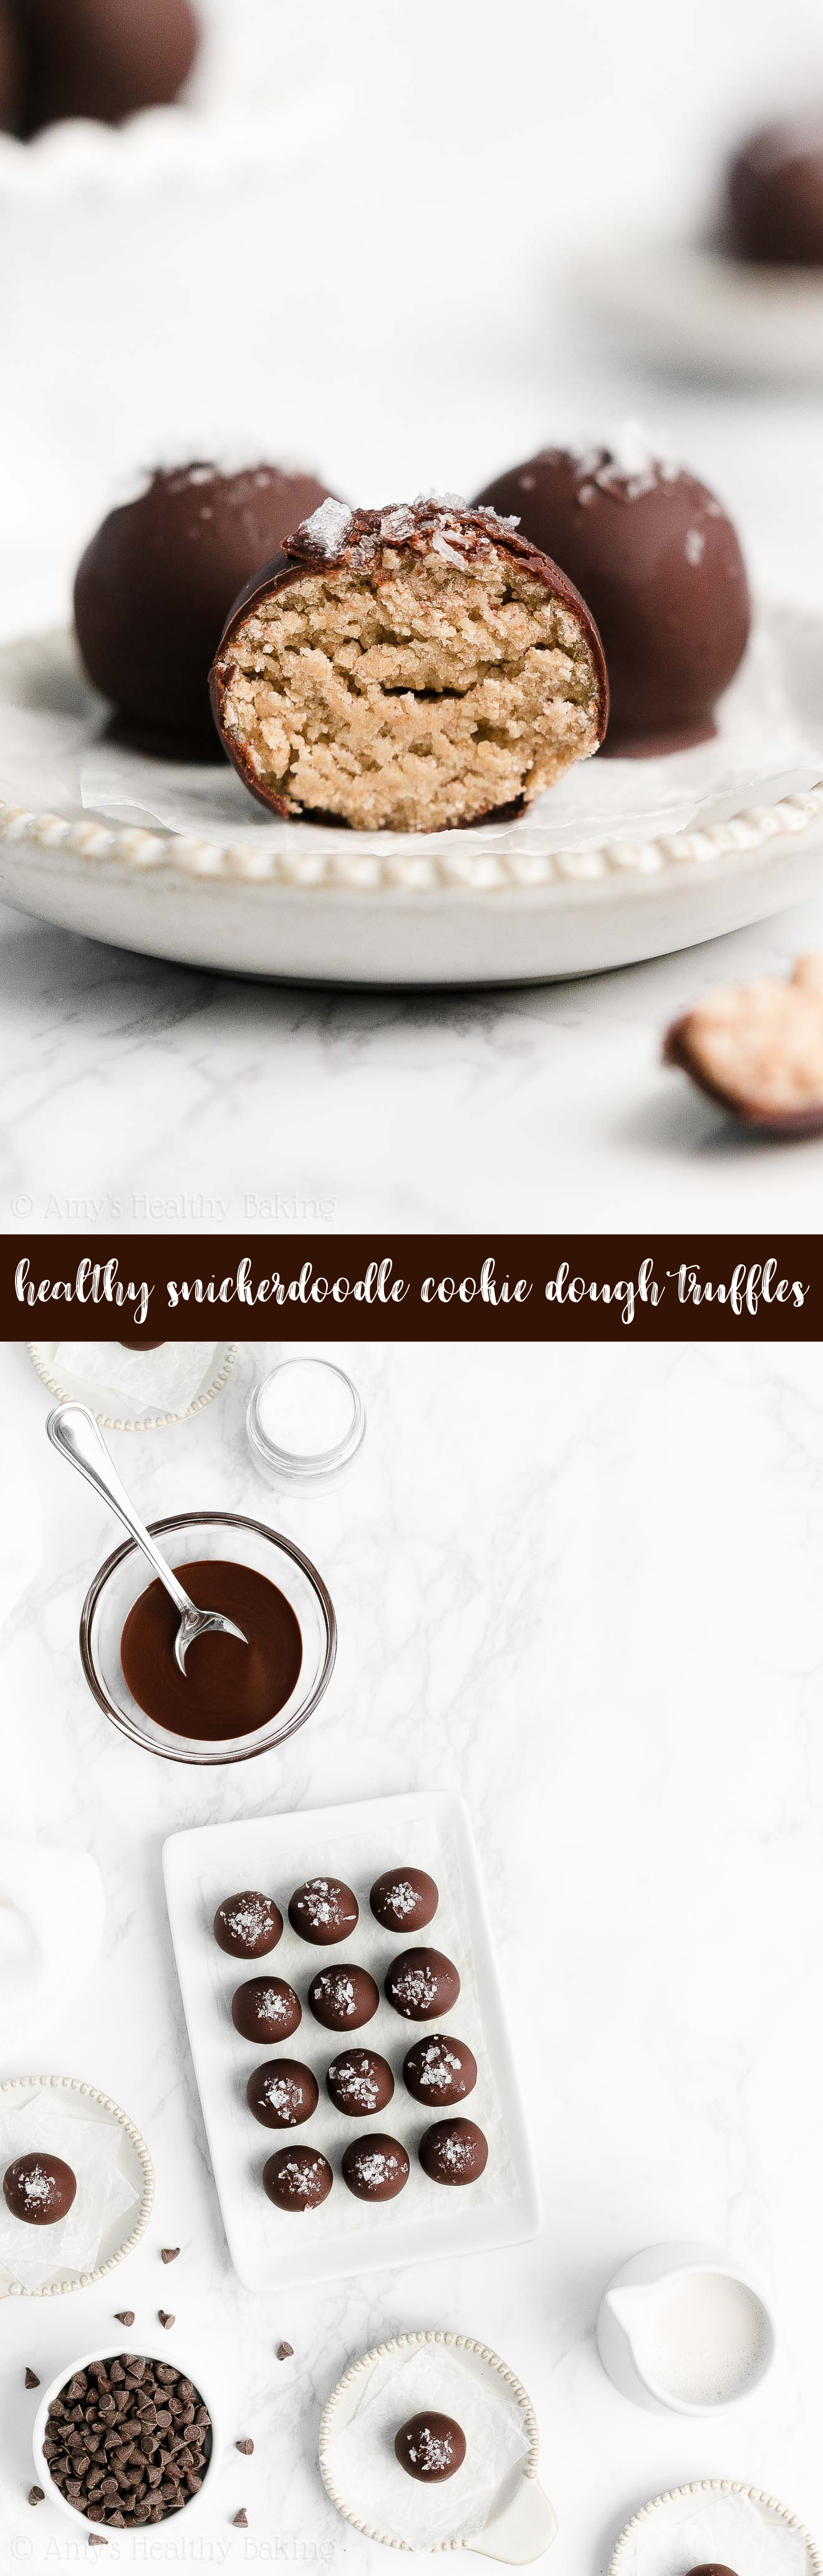 Best Easy Healthy Vegan No Bake No Sugar Edible Eggless Snickerdoodle Cookie Dough Truffles